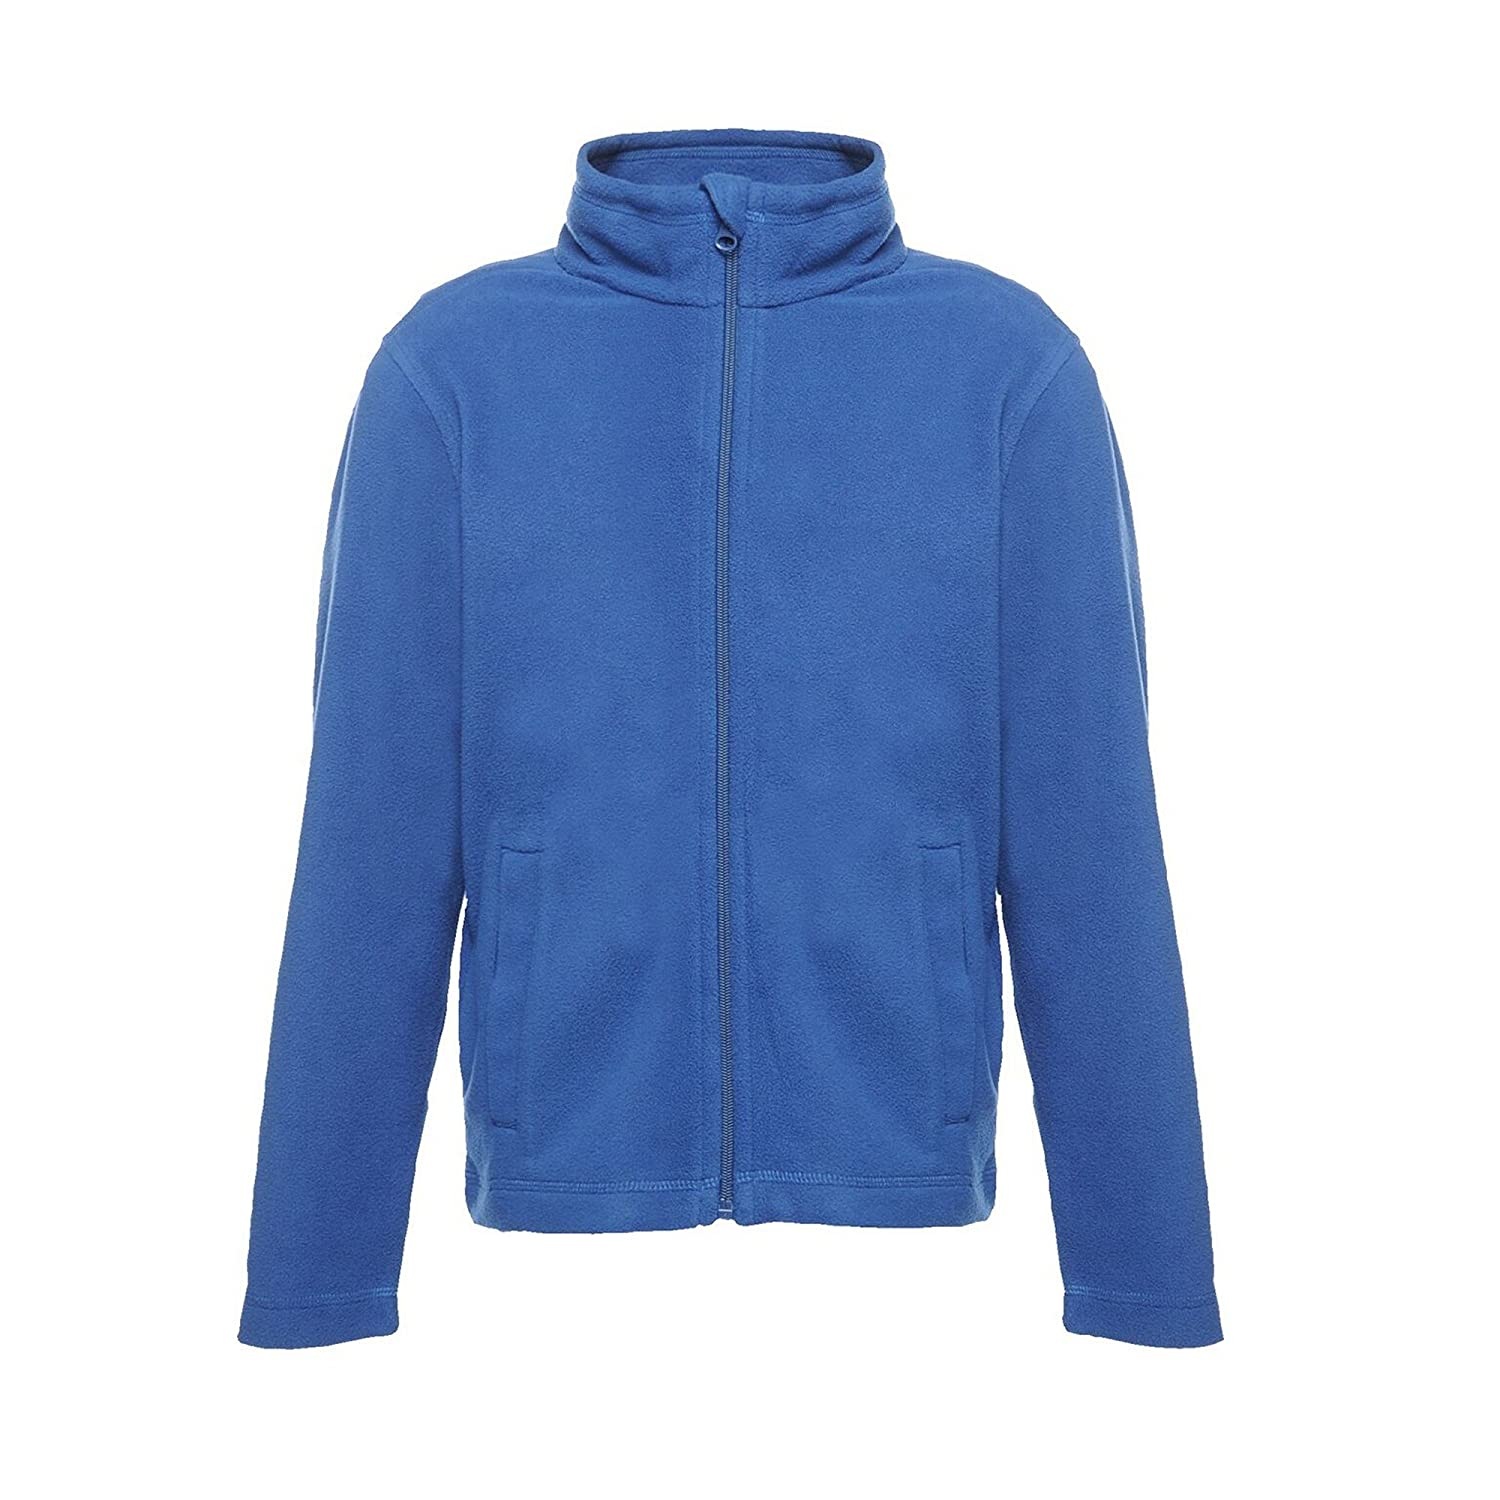 Regatta Childrens/Kids Brigade II Micro Fleece Jacket